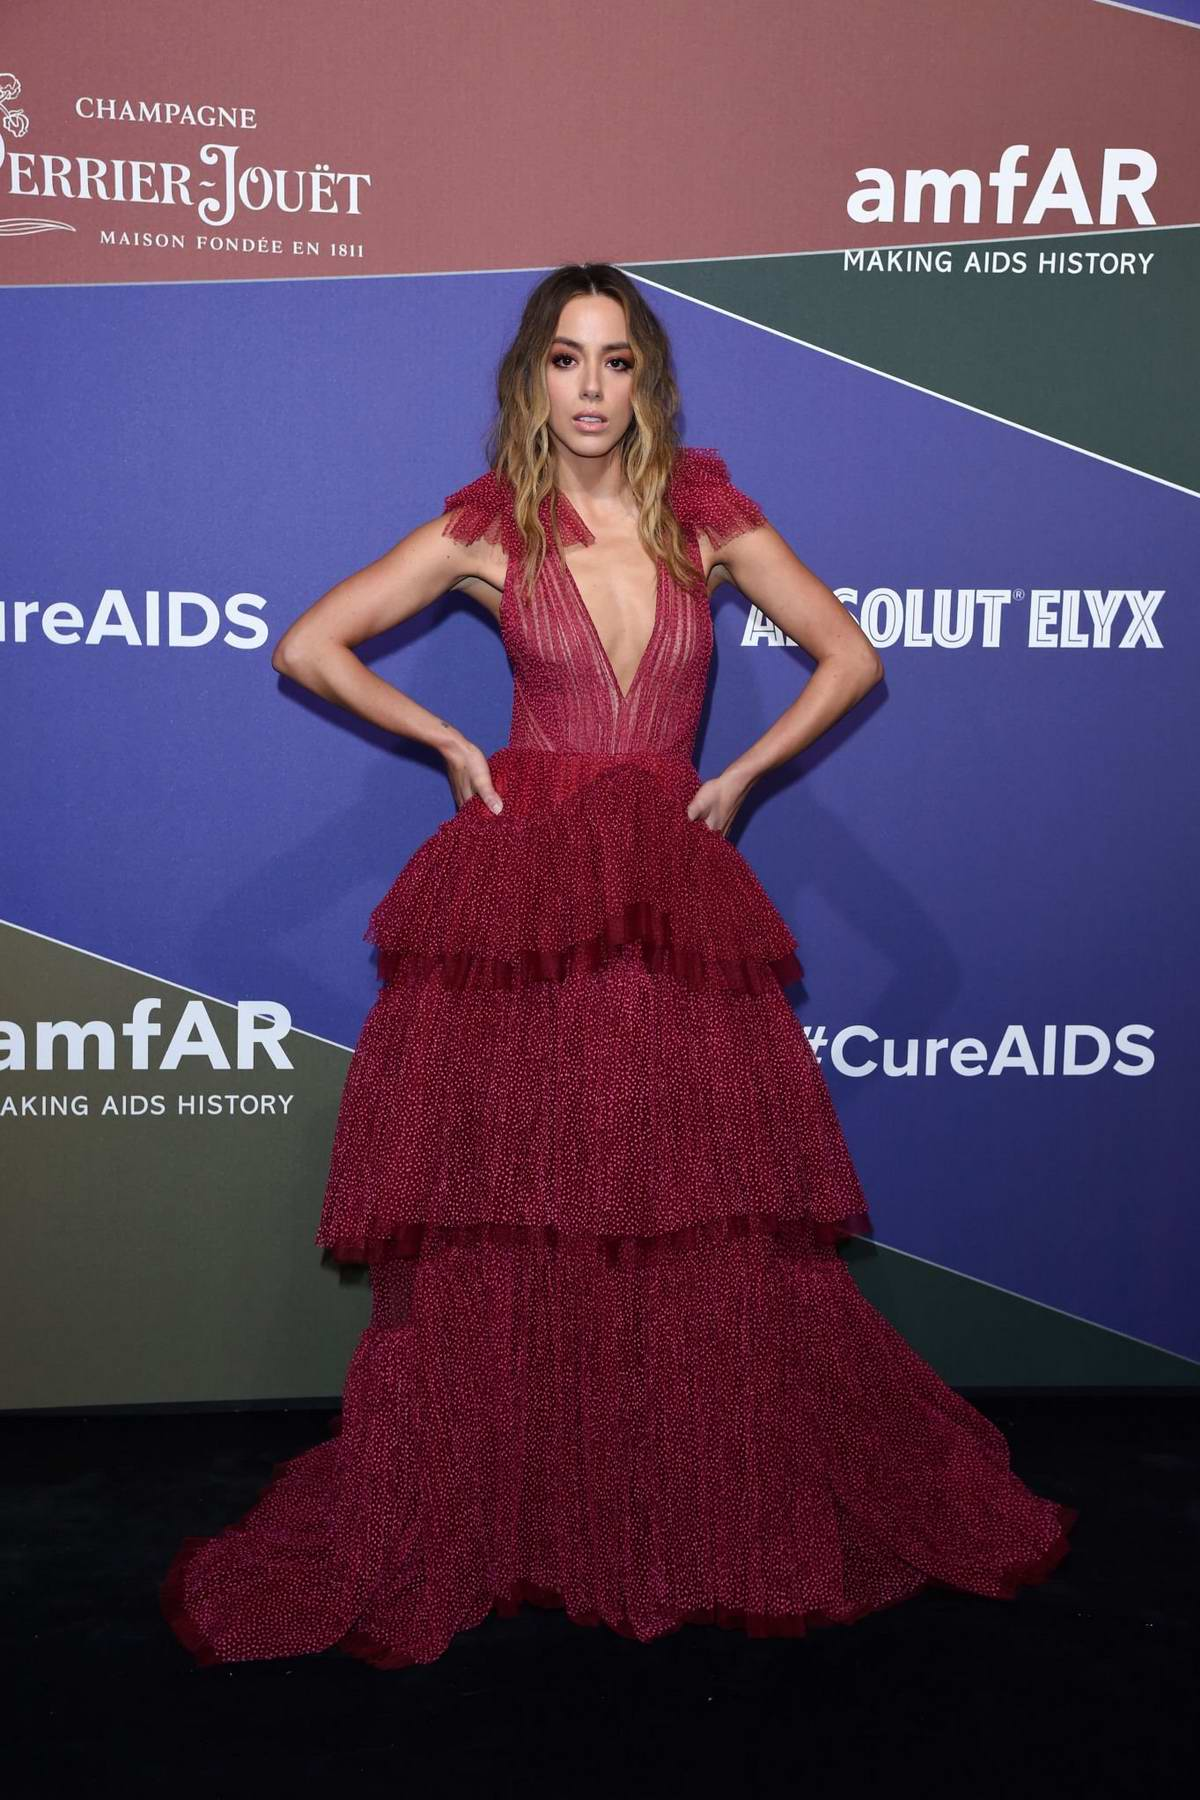 Chloe Bennet attends the amfAR Gala Milano 2019 at Palazzo Mezzanotte in Milan, Italy